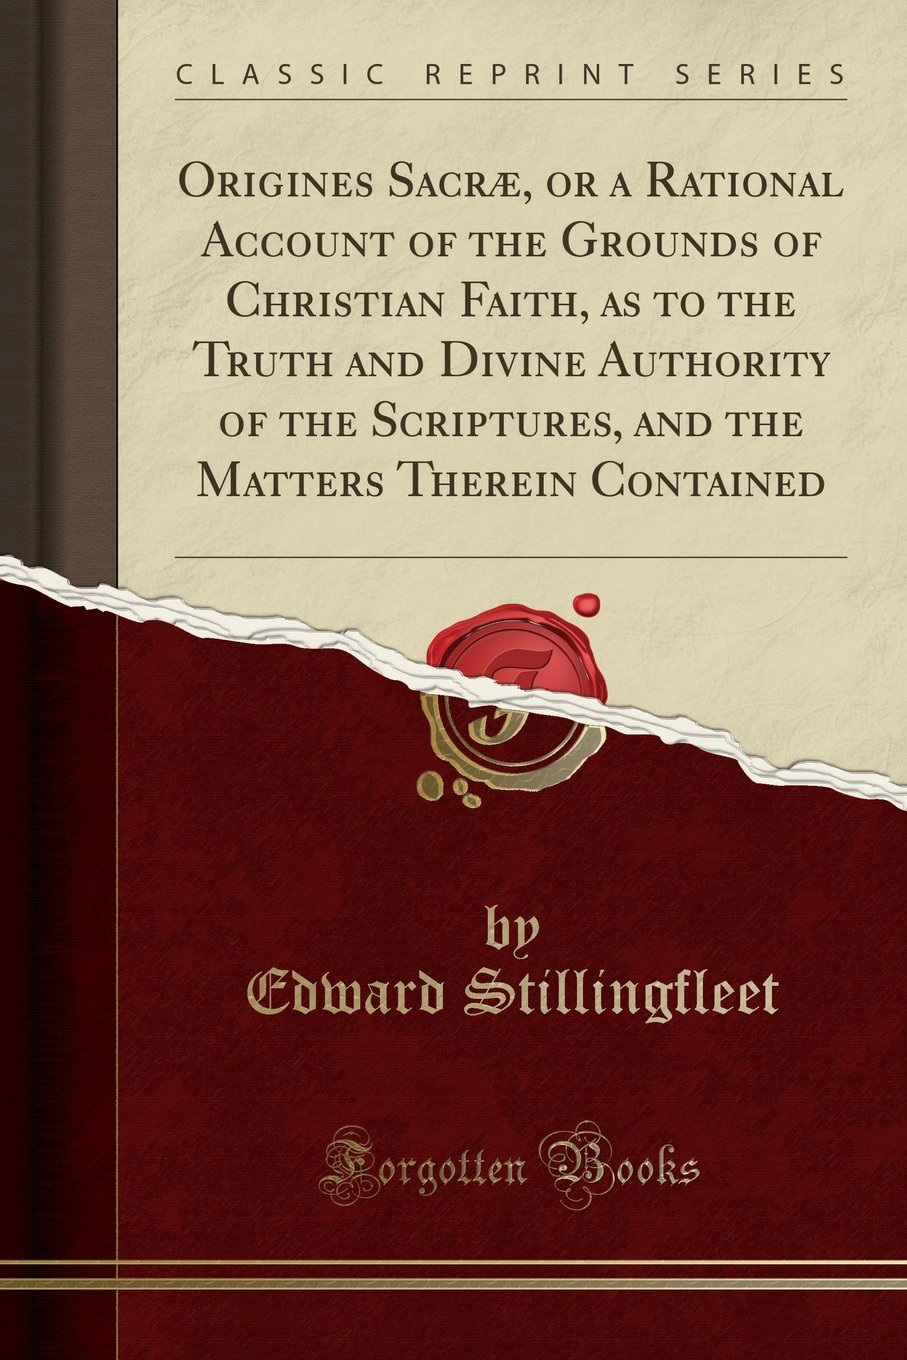 Download Origines Sacræ, or a Rational Account of the Grounds of Christian Faith, as to the Truth and Divine Authority of the Scriptures, and the Matters Therein Contained (Classic Reprint) pdf